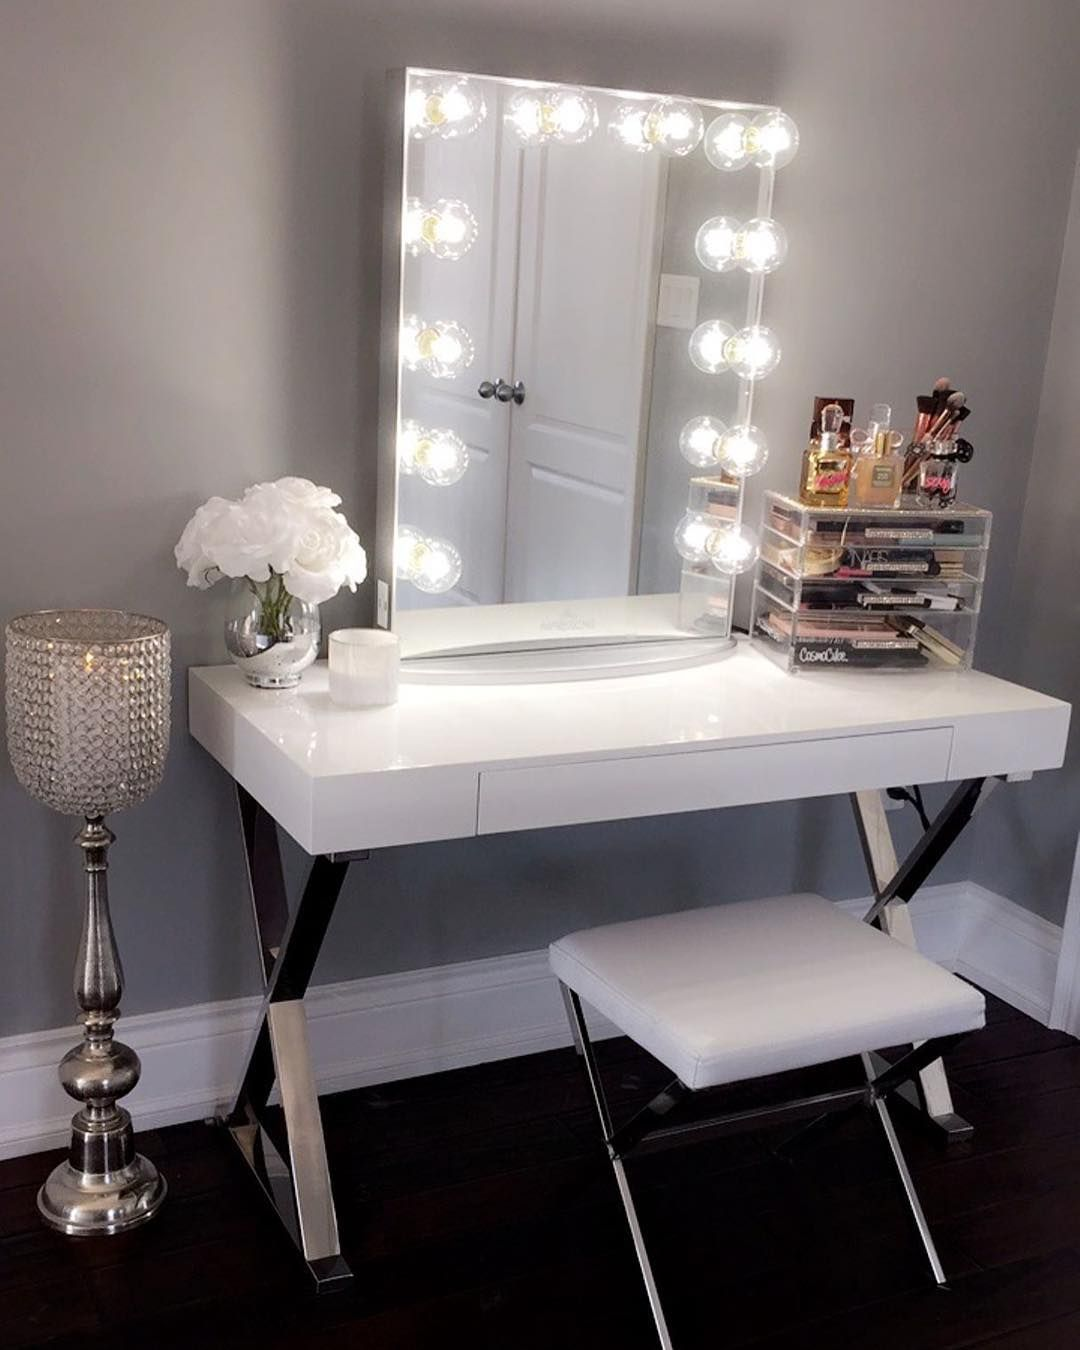 Best Diy Vanity Mirror With Lights For Bathroom And Makeup 400 x 300